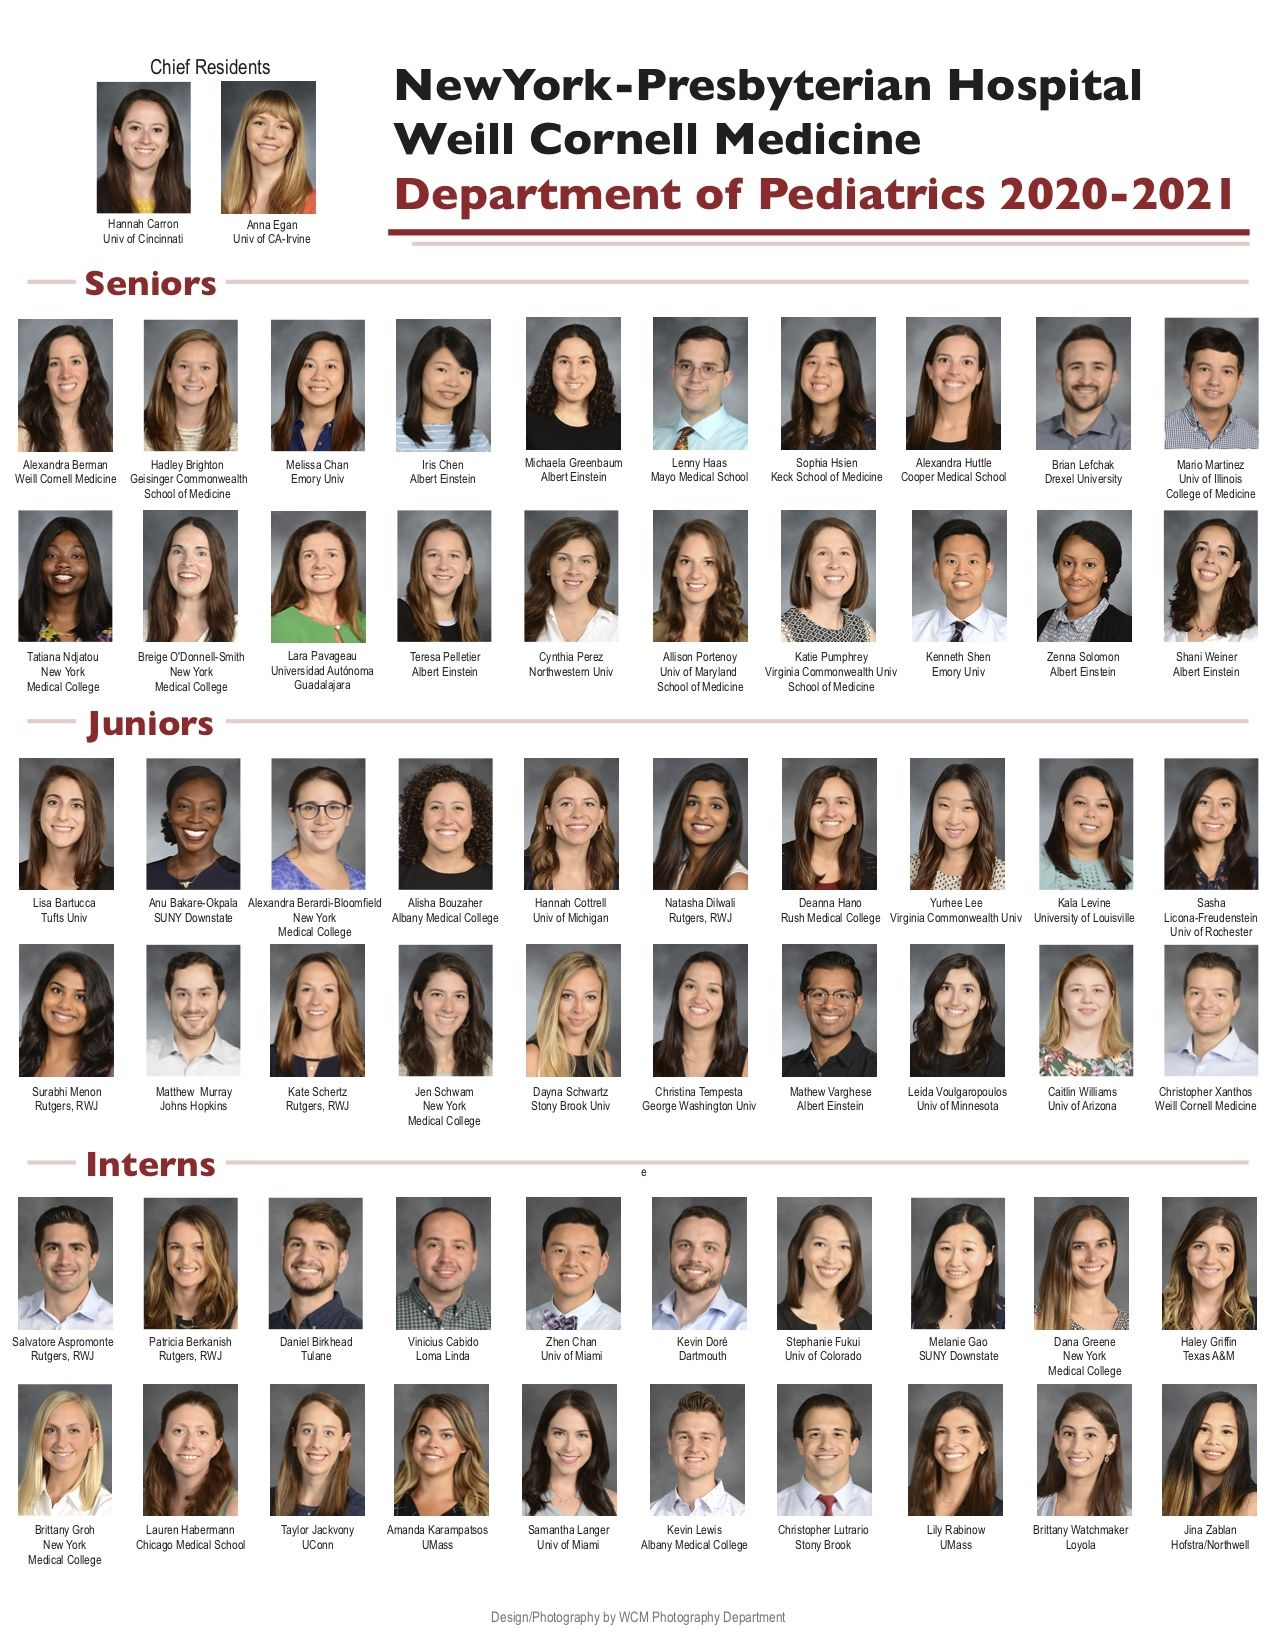 Composite of Pediatric Residents 2020-2021